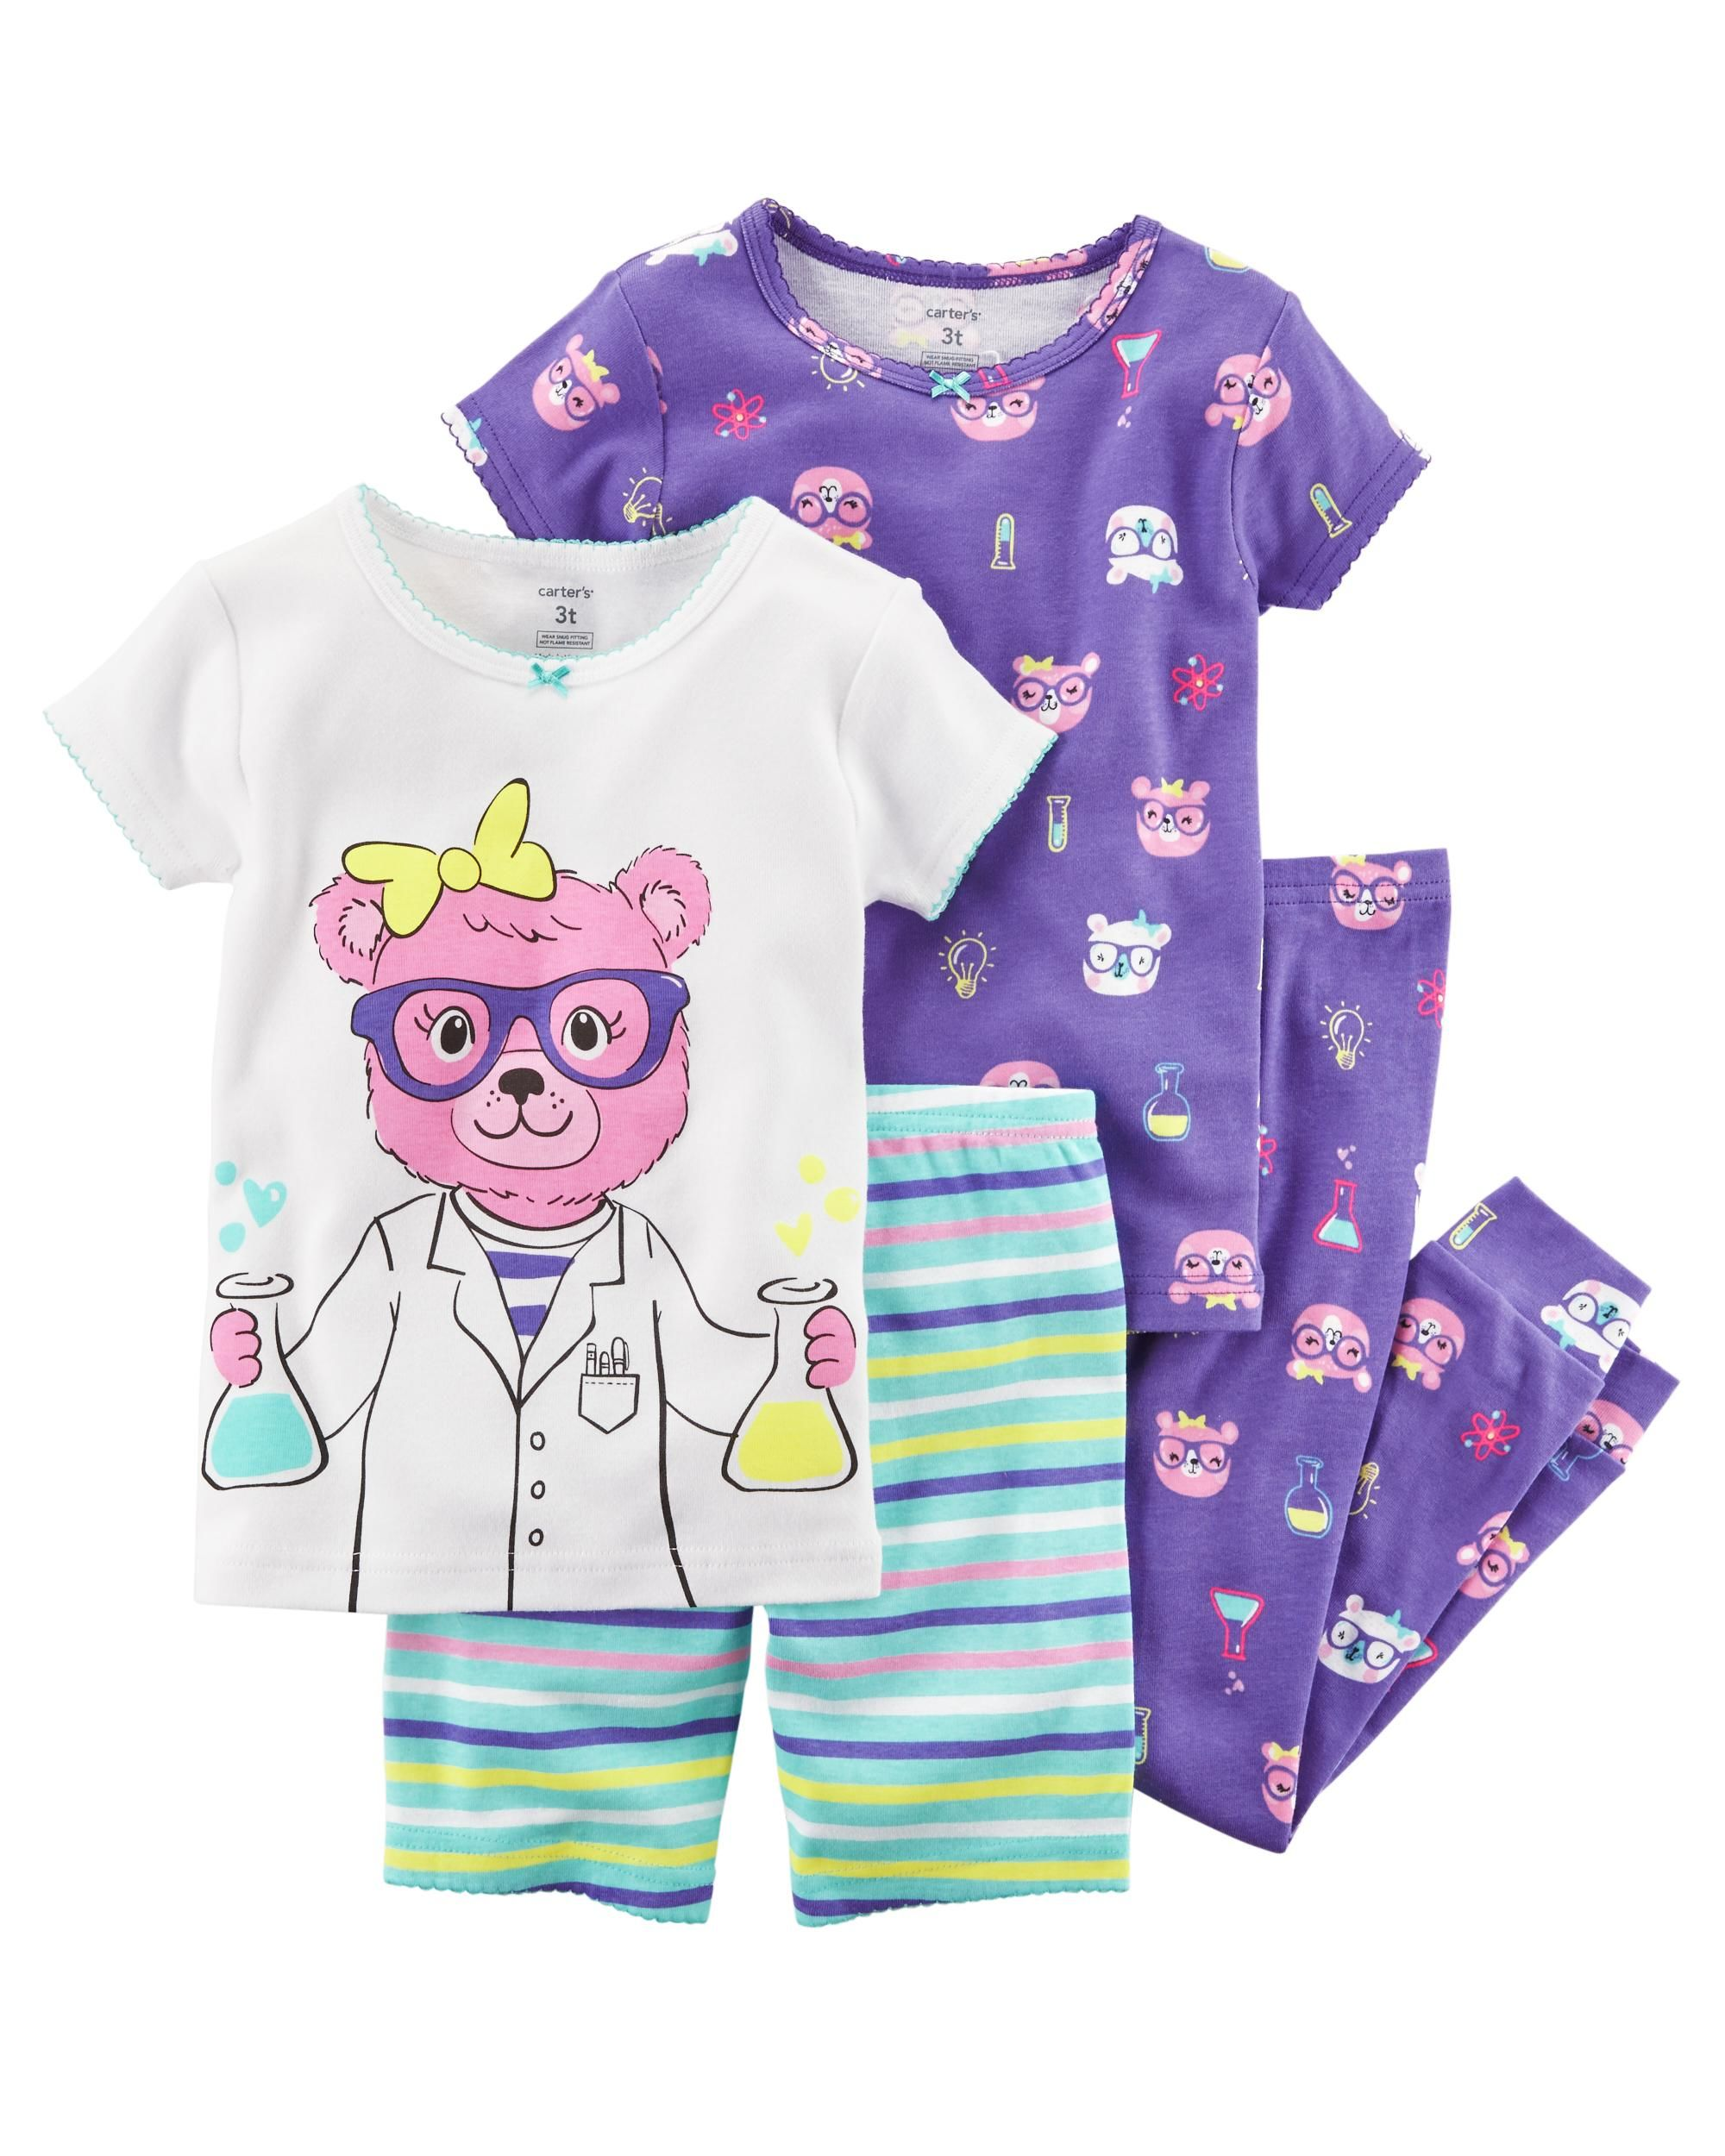 4-Piece Set Size 4T Purple Toddler Girl Cotton Tight Fit Pajamas